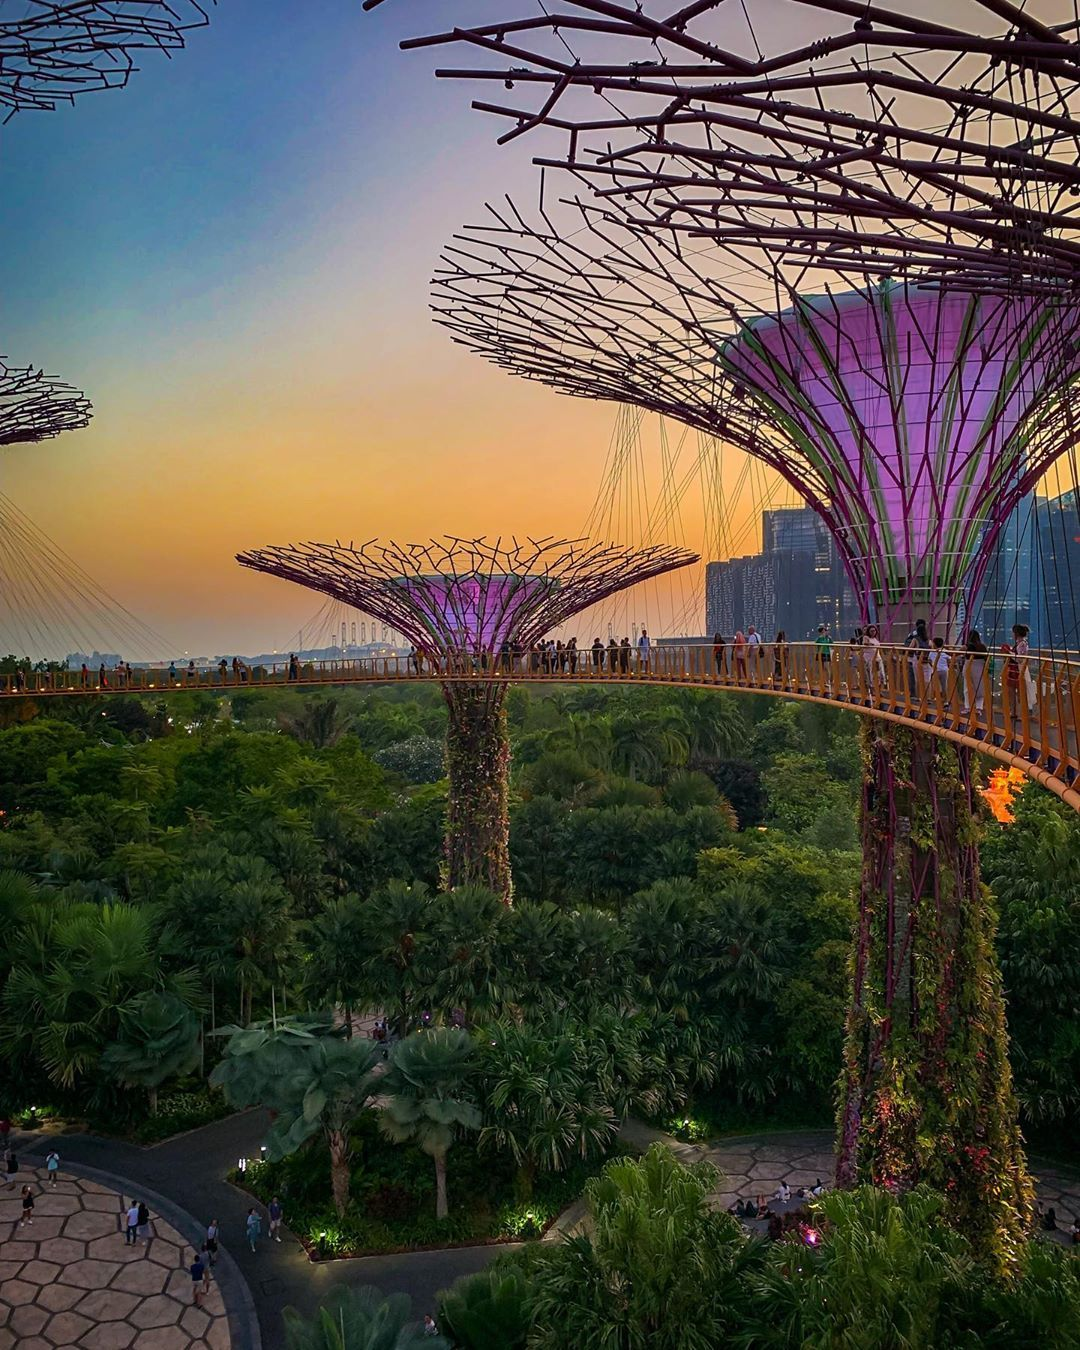 Gardens By The Bay Singapore By Firstofly Author Traveling Travelers Travelblogge Gardens By The Bay Travel Photography Luxury Travel